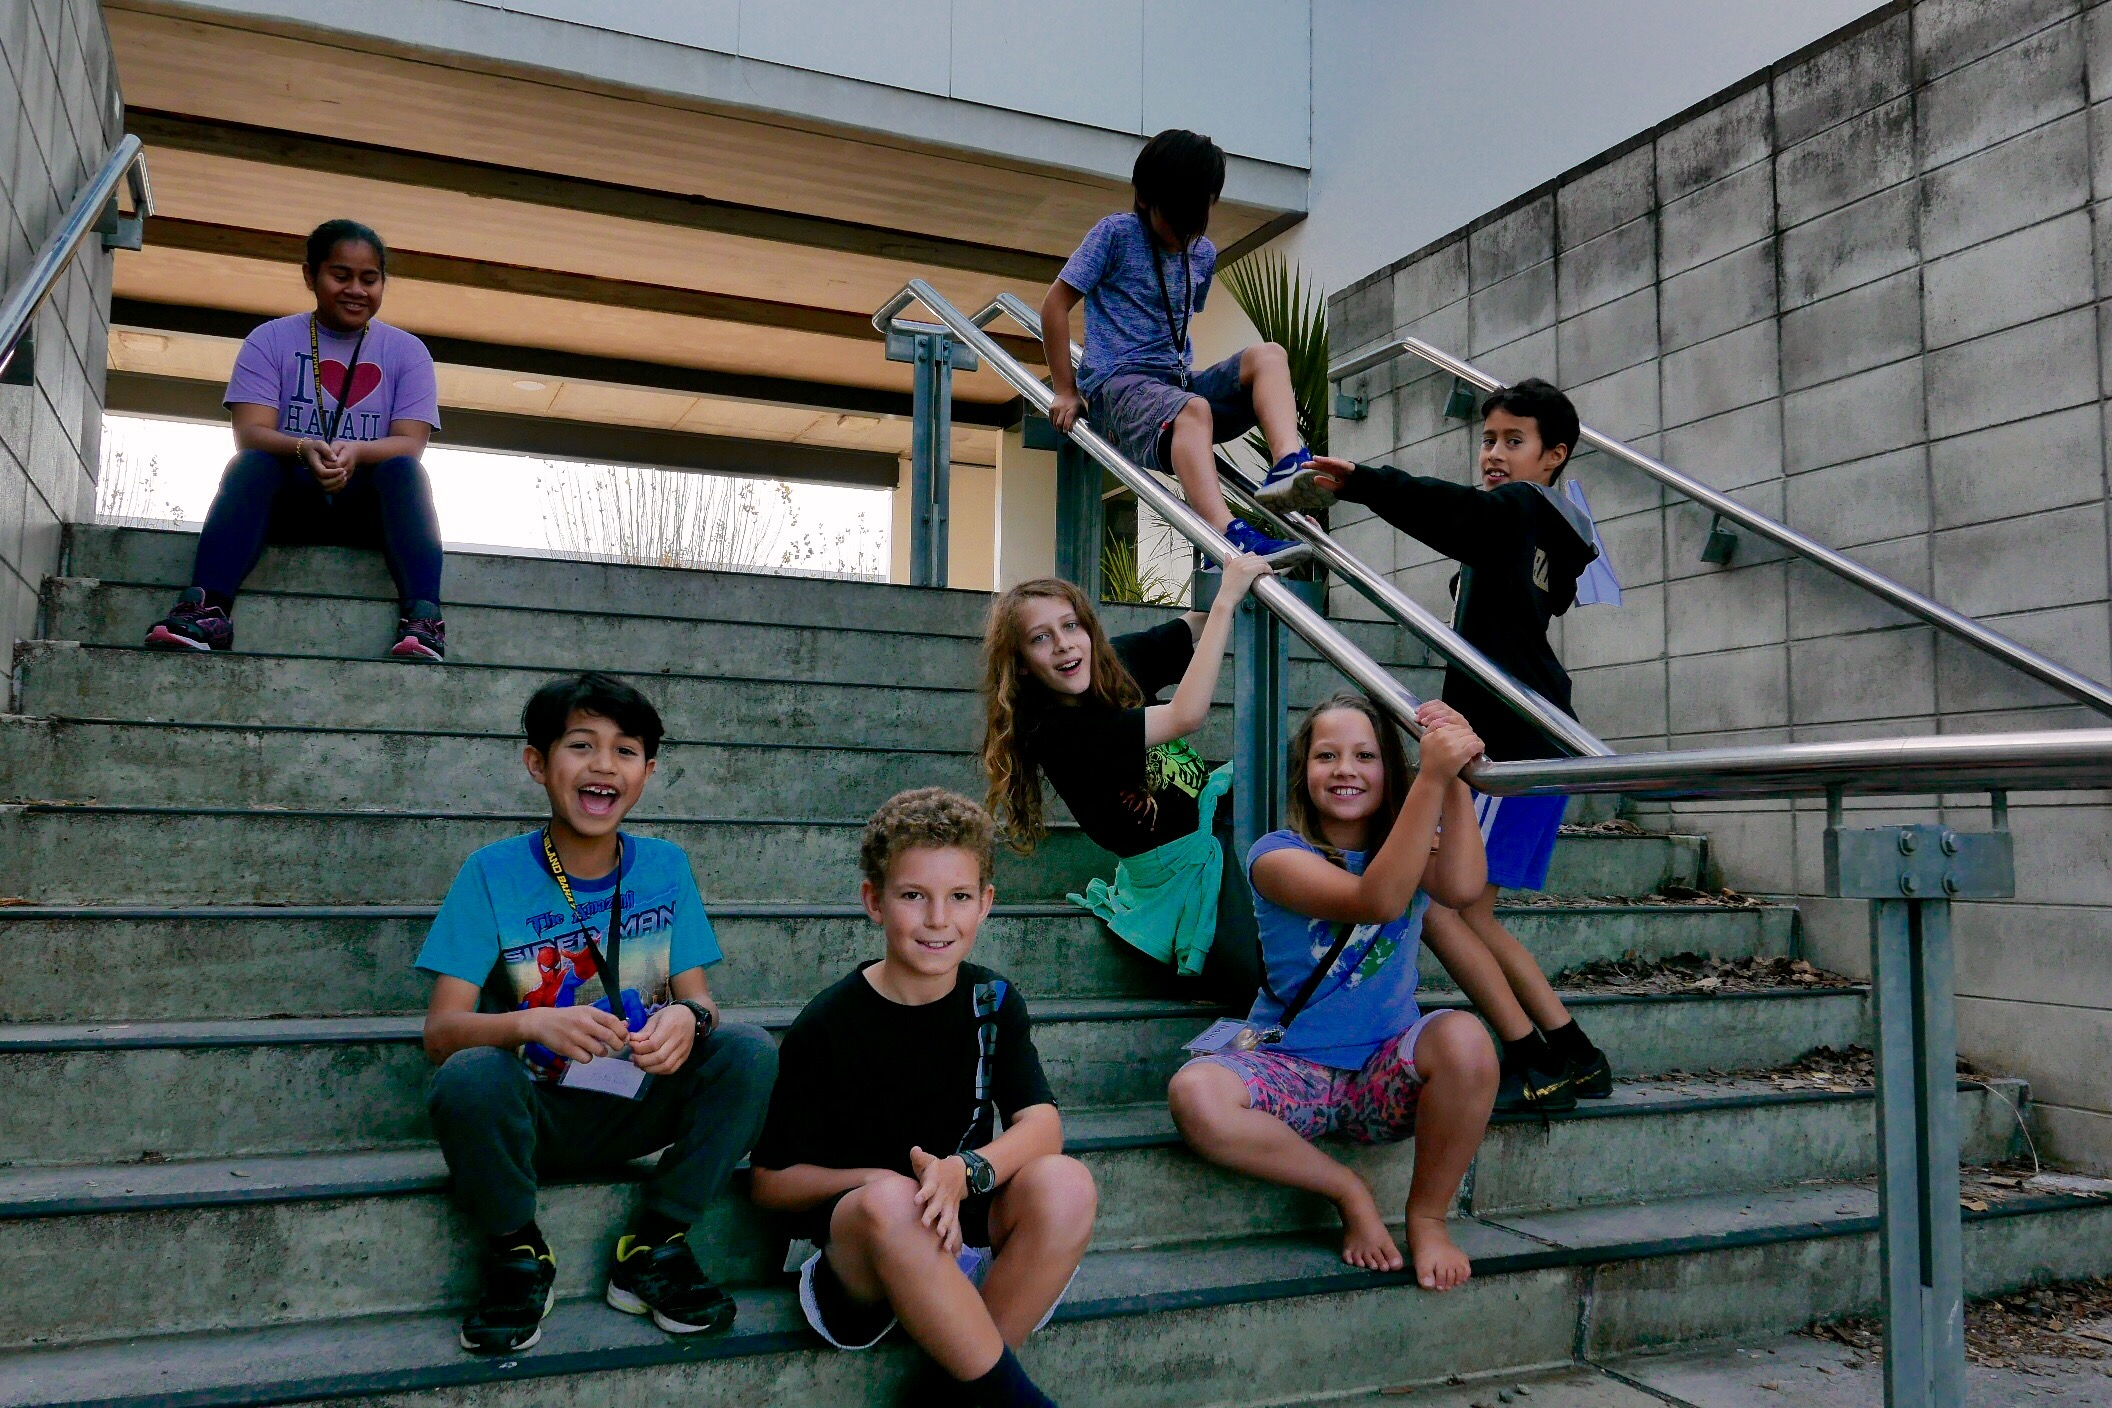 children 8-10 on stairs 2.JPG